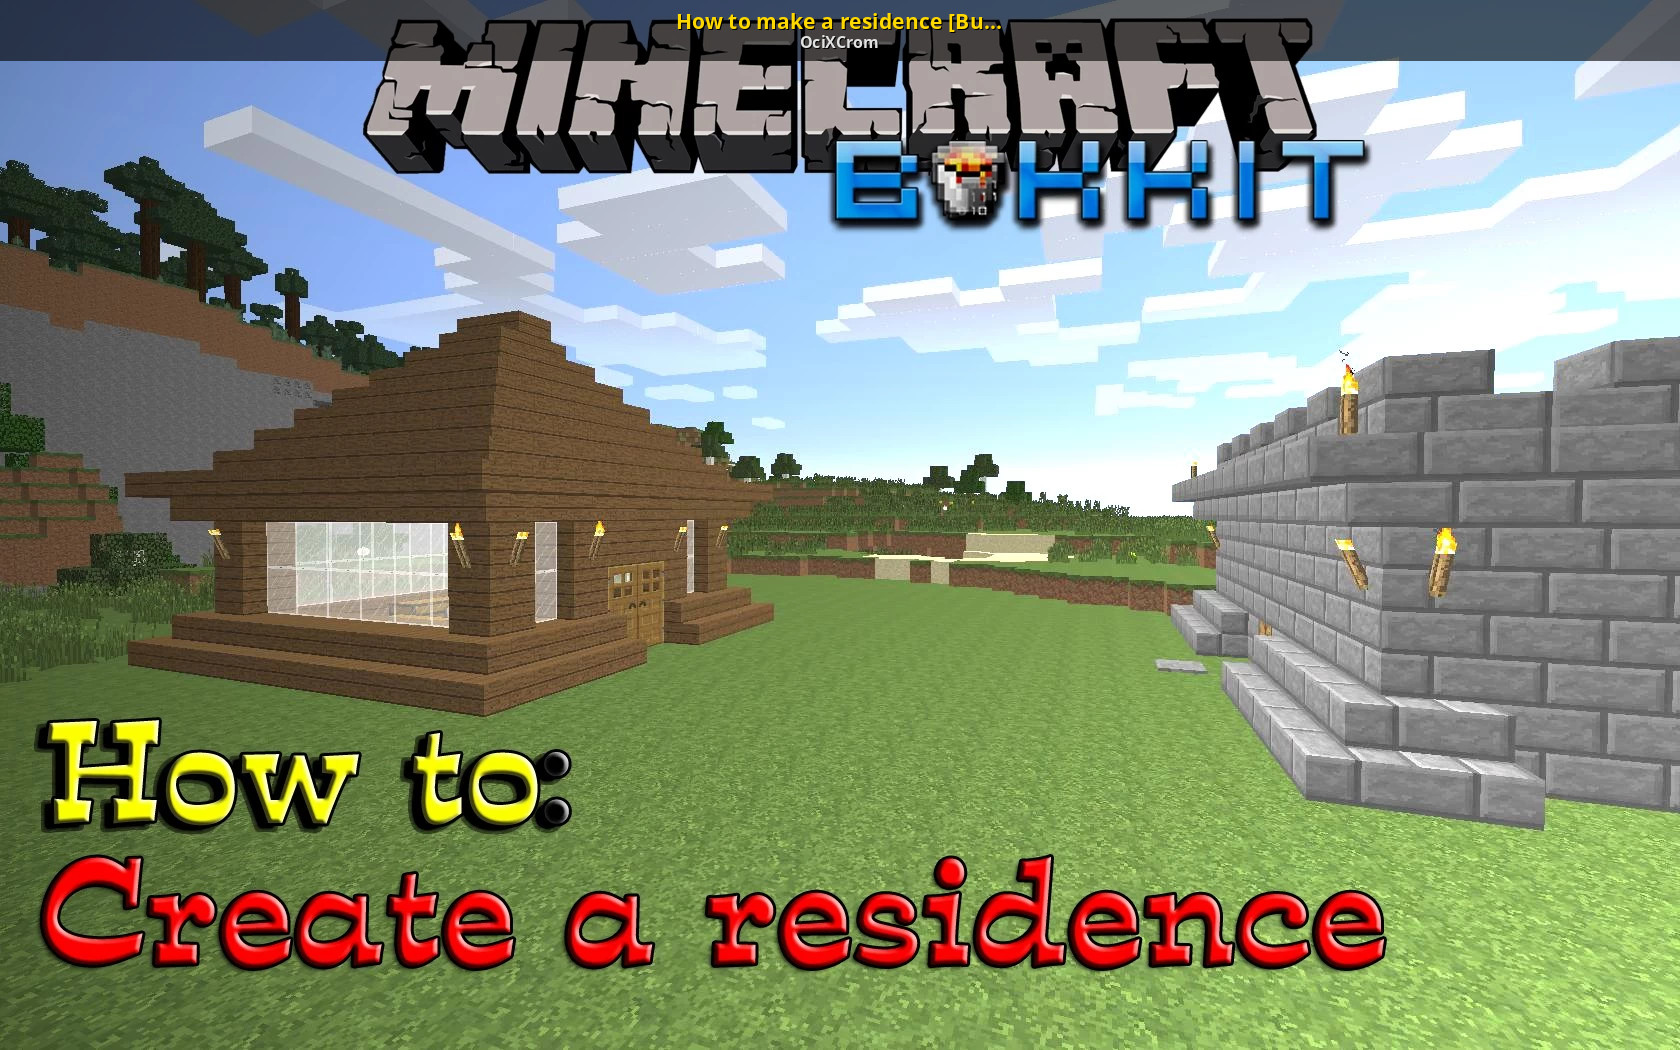 How To Make A Residence Bukkit Plugin Residence Minecraft Tutorials - Minecraft teleport player to mob